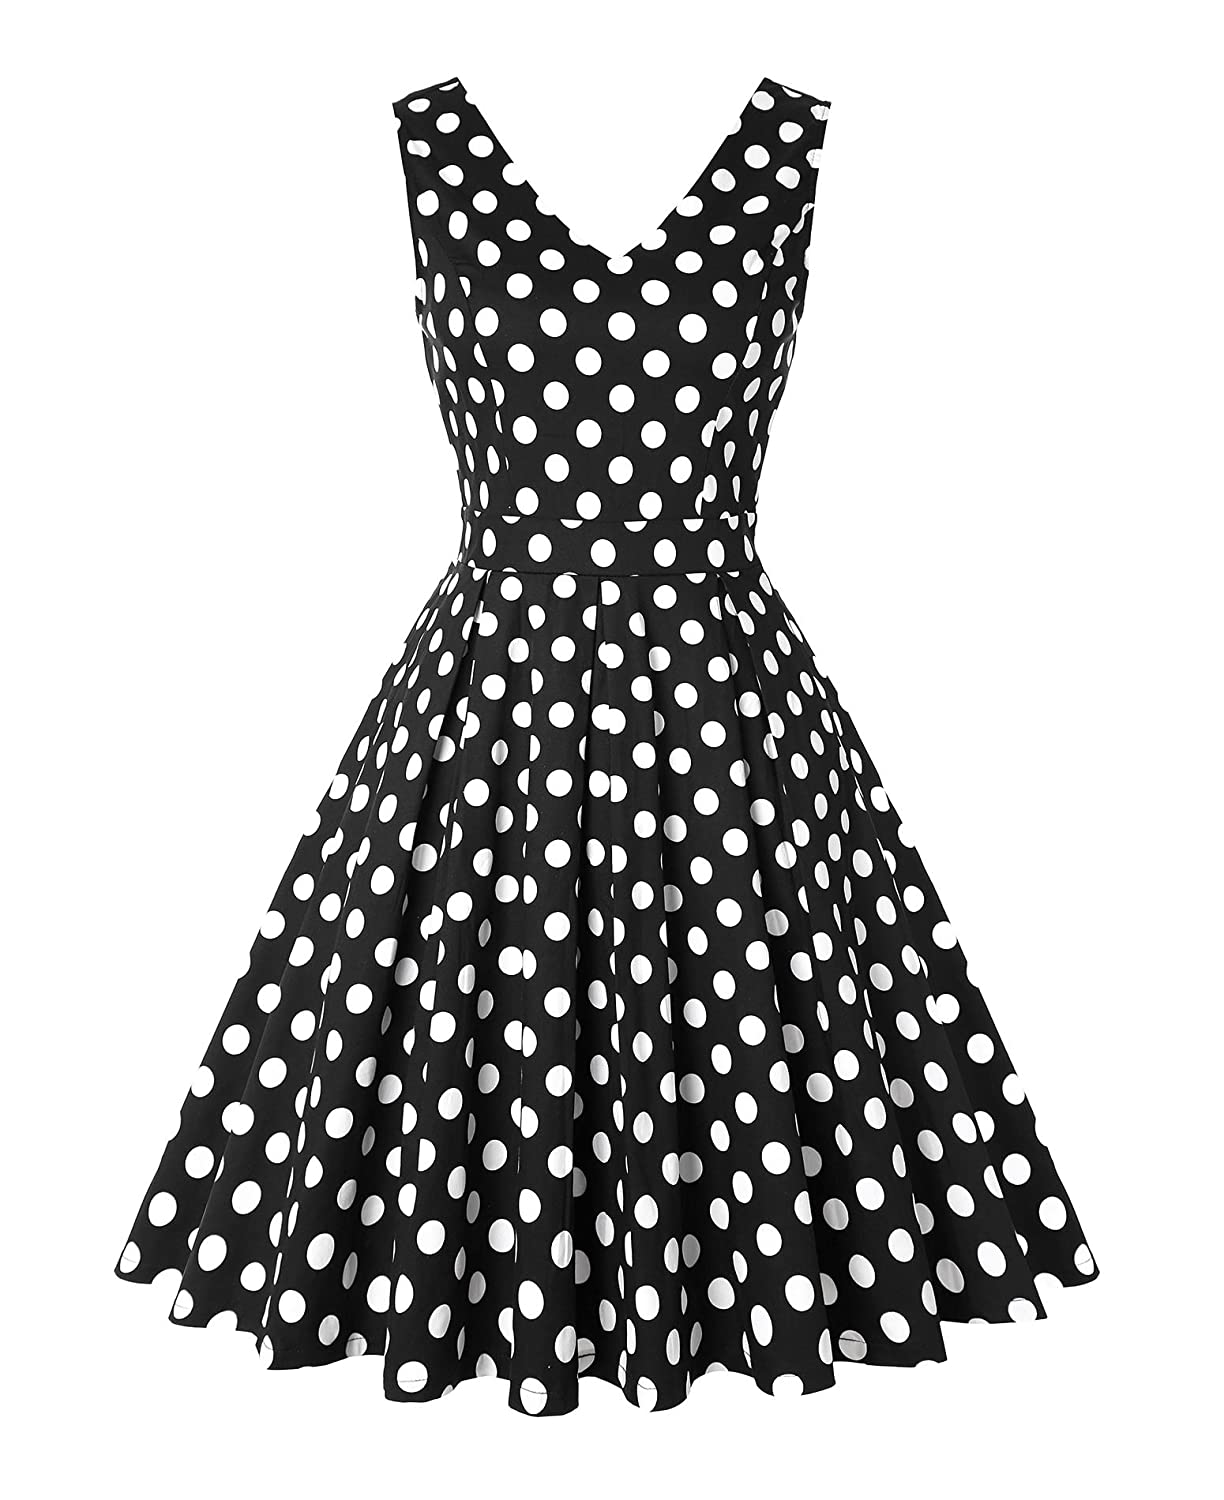 d7e1720c5ff4c Online Cheap wholesale ROOSEY Womens Polka Dot Retro Party Dress V Neck  Sleeveless Vintage Tea Dress Dresses Suppliers